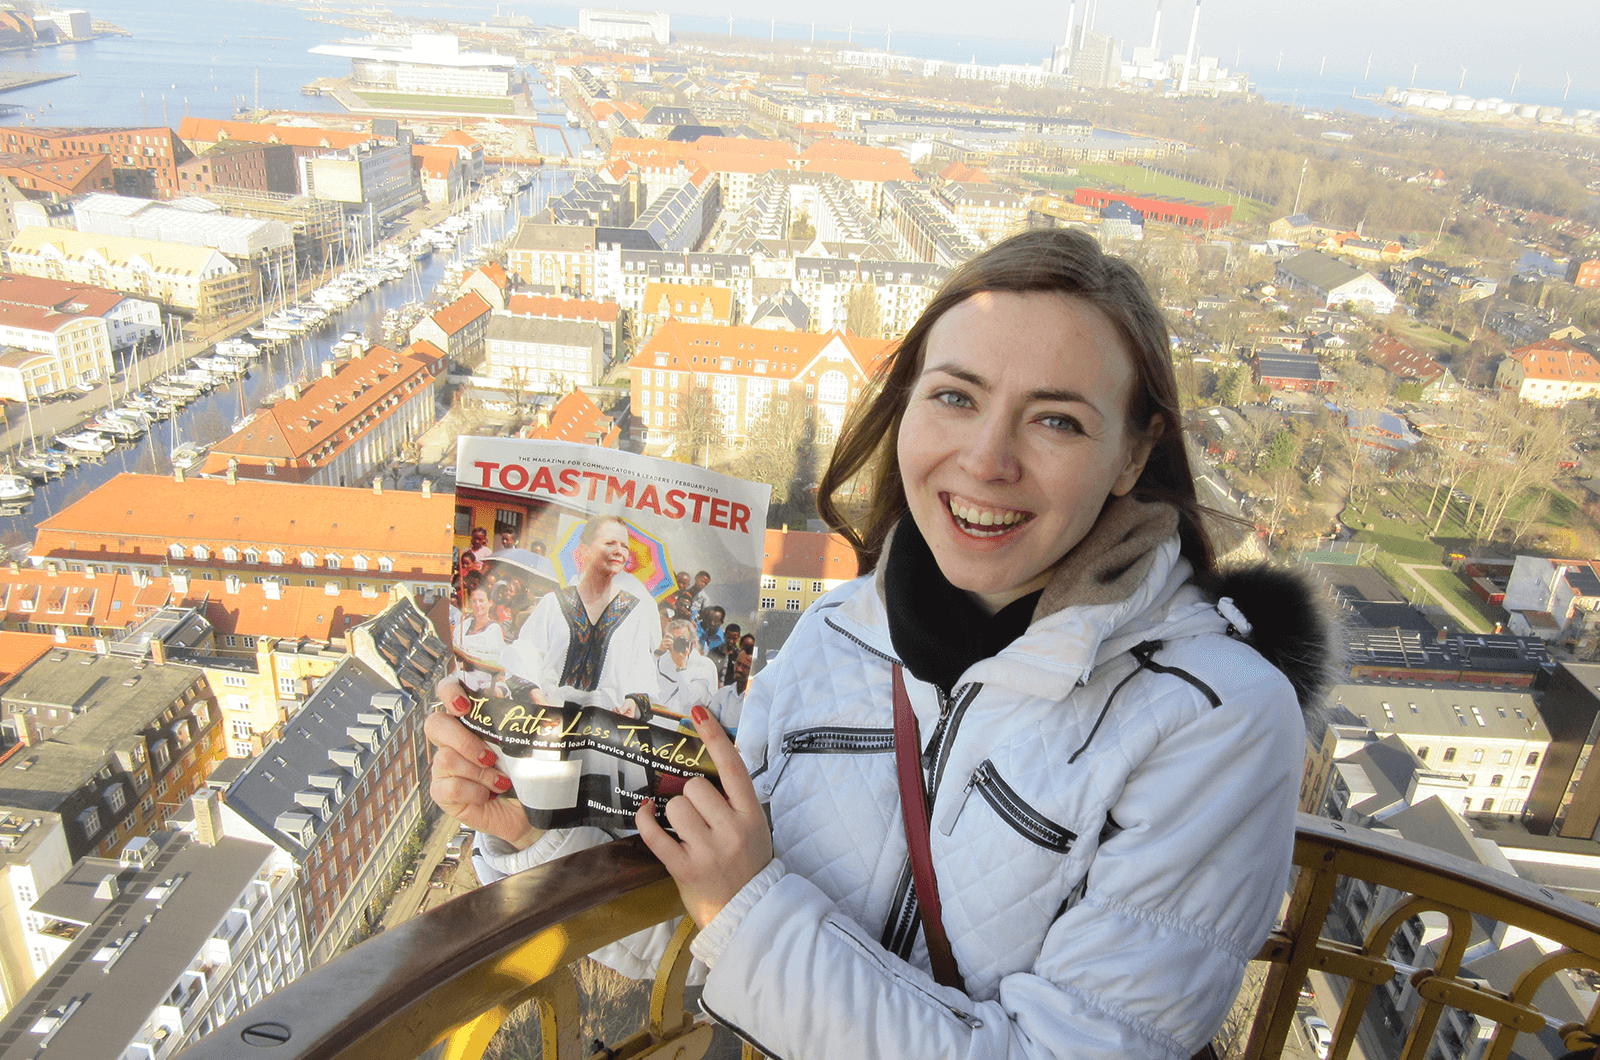 Irina Suvorova of Moscow, Russia, stands at the top of the Church of Our Savior's tower overlooking Copenhagen, Denmark.